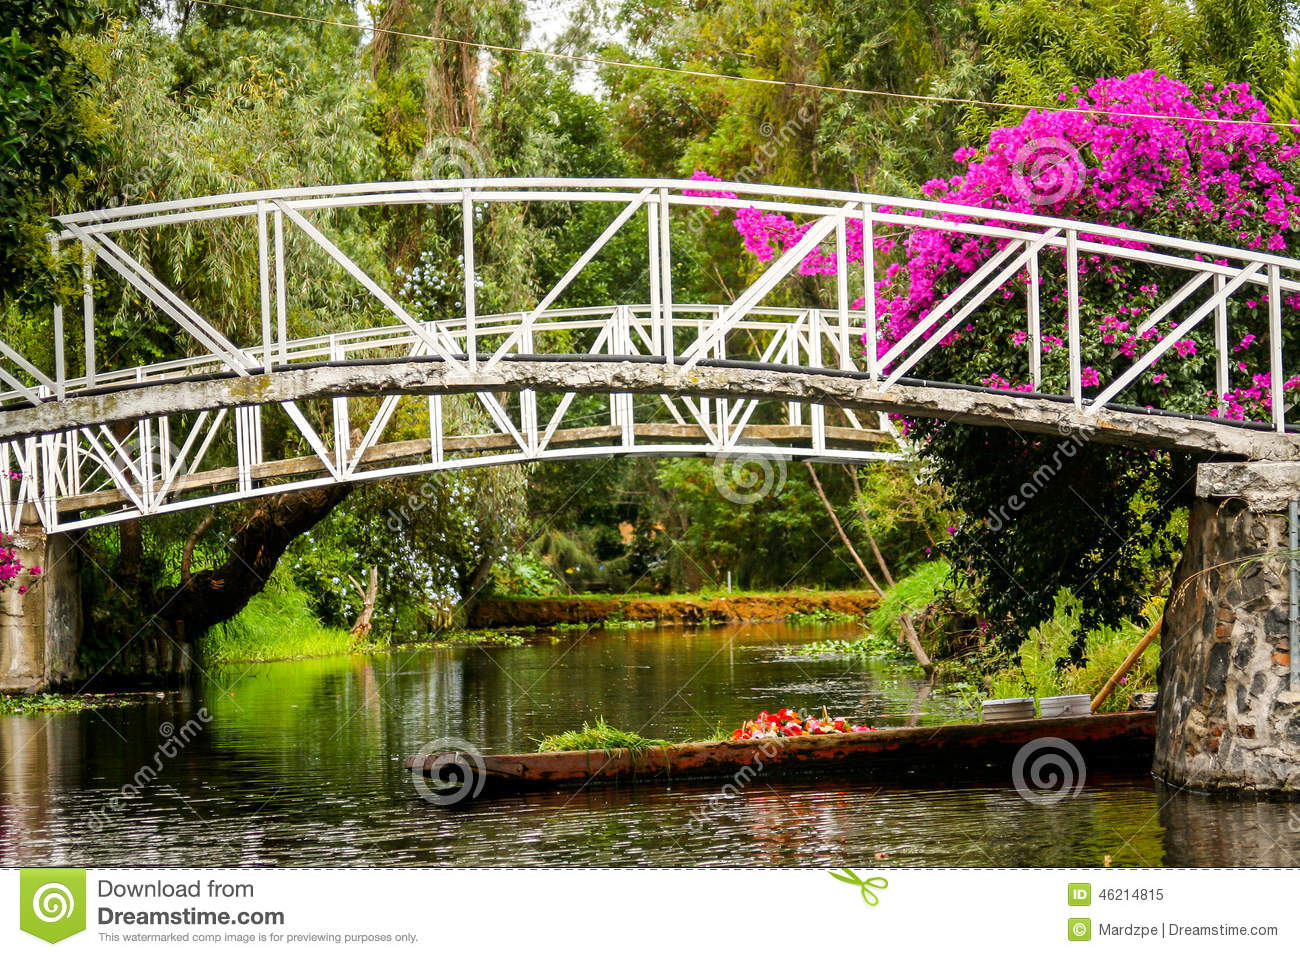 Colourful Mexico Xochimilco 39 S Floating Gardens In Mexico City Stock Photo Image 46214815